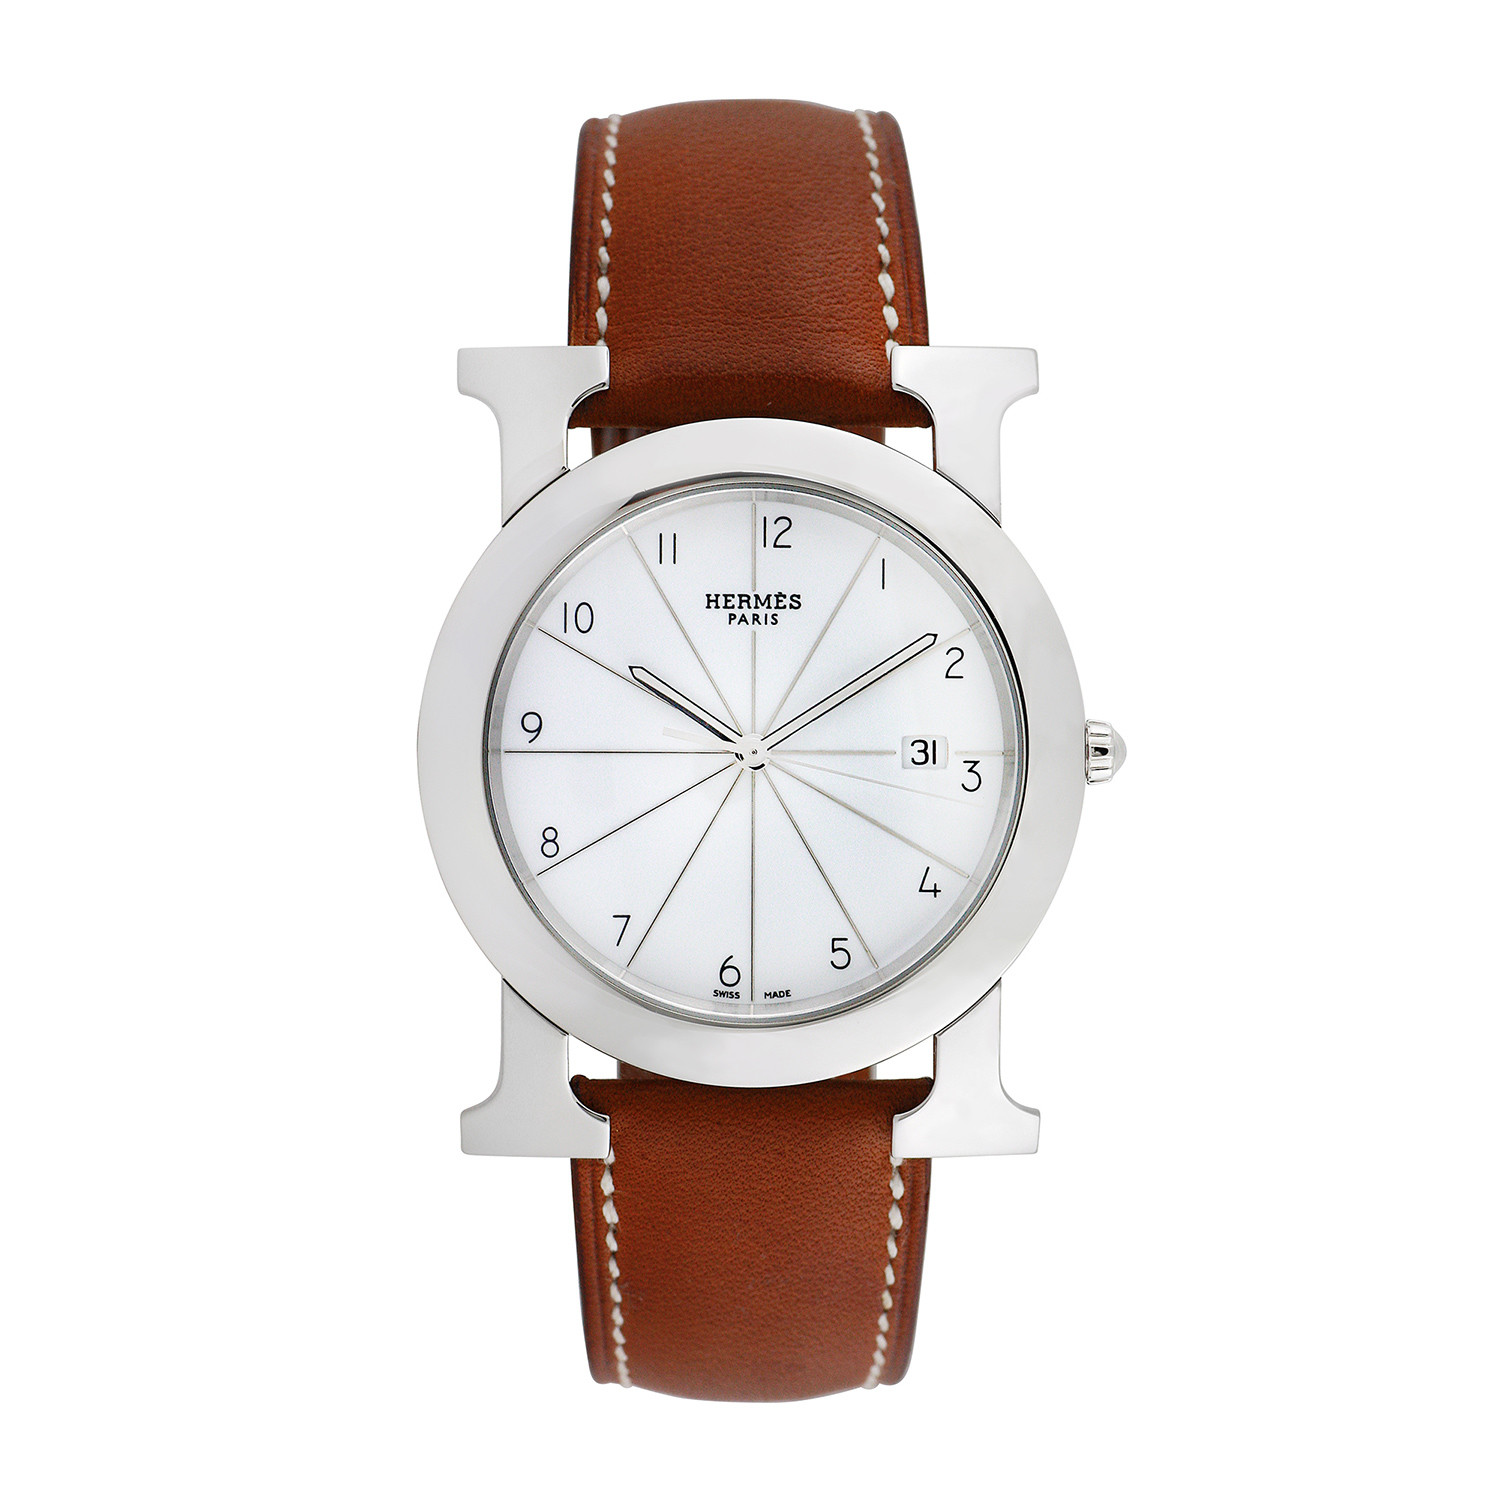 Hermes h watch quartz 793 tm10045 pre owned pre owned collectible watches for Celebrity quartz watch